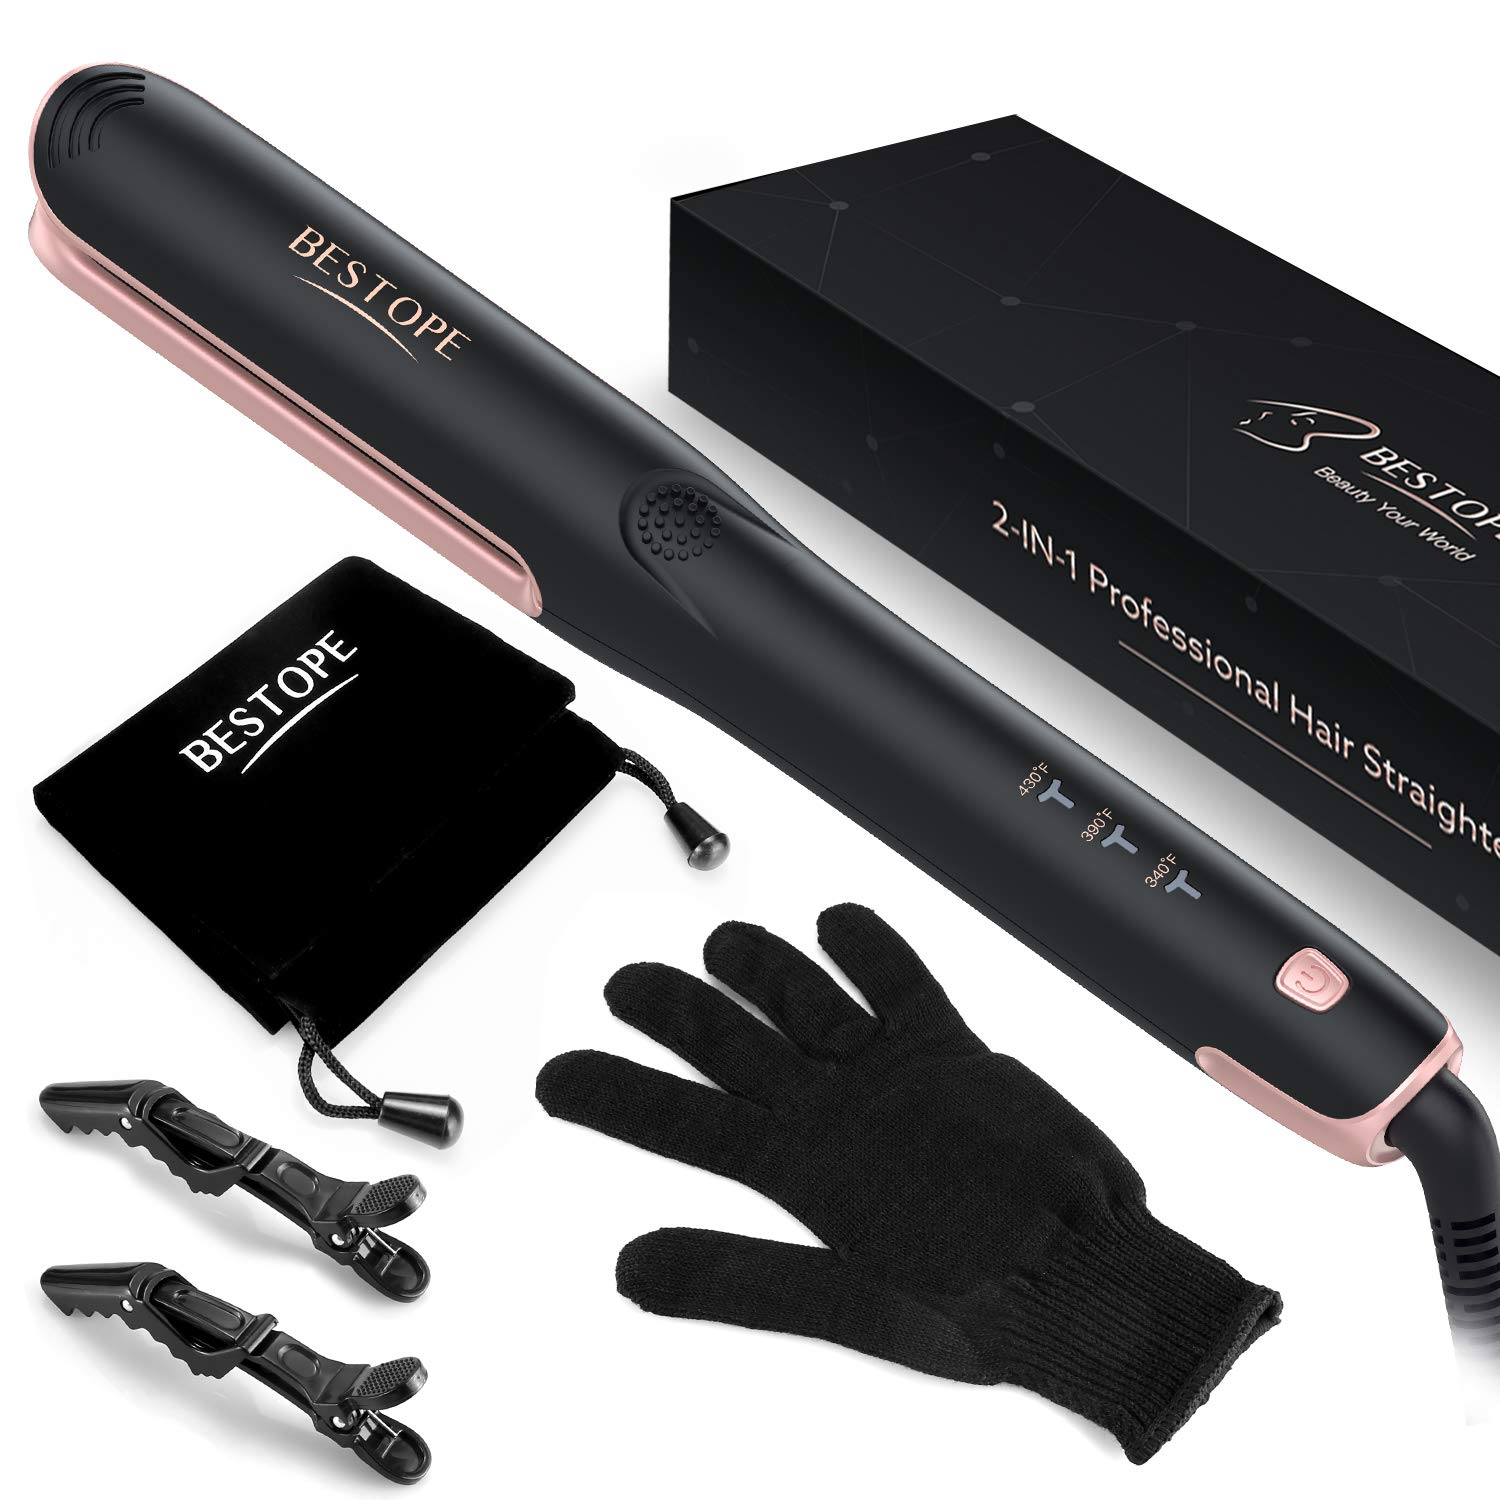 Hair Straightener and Curler, BESTOPE Professional Ceramic 2 In 1 Flat Iron for Hair, 15s MCH Tourmaline Heating Technology with Safer Closed Iron Plate Version by BESTOPE